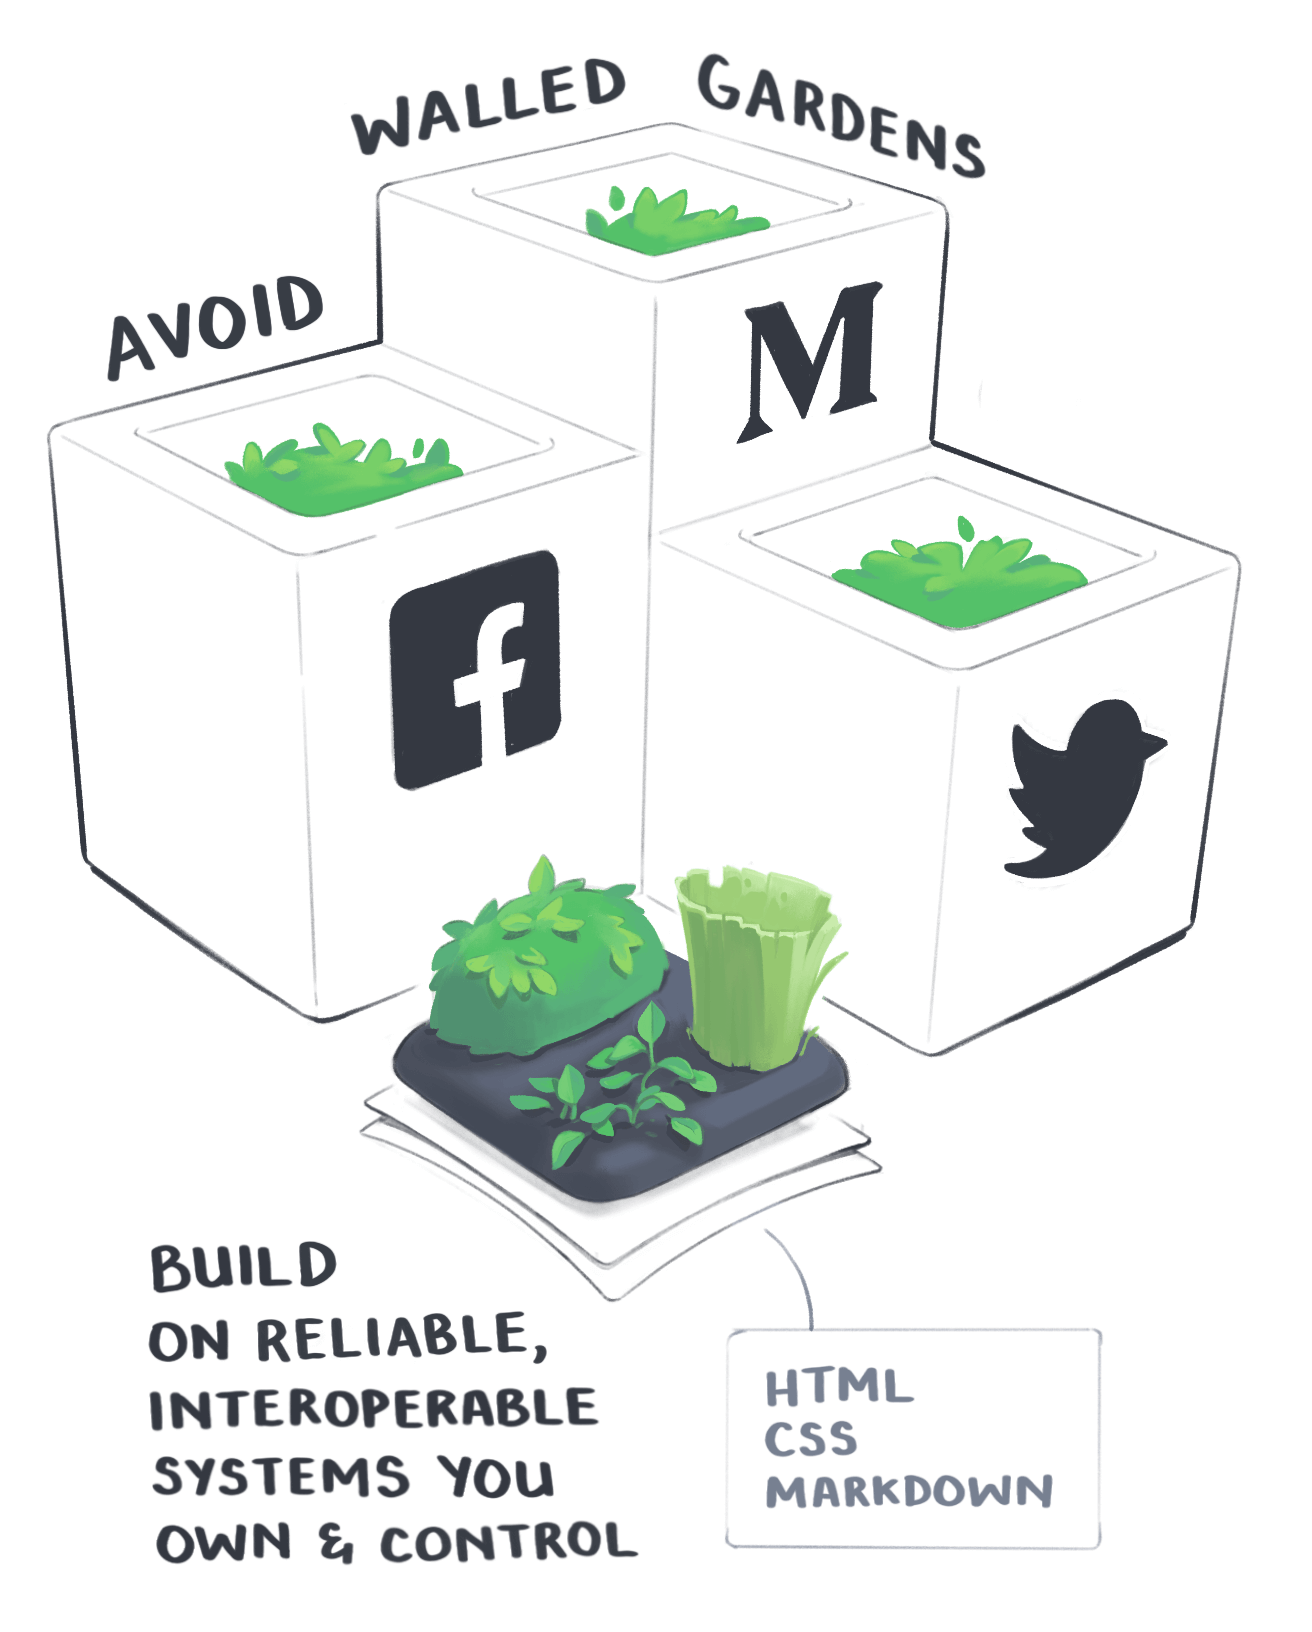 A set of walled gardens with the Twitter, Medium, and Facebook logos next to an open garden built on HTML, CSS, and Markdown